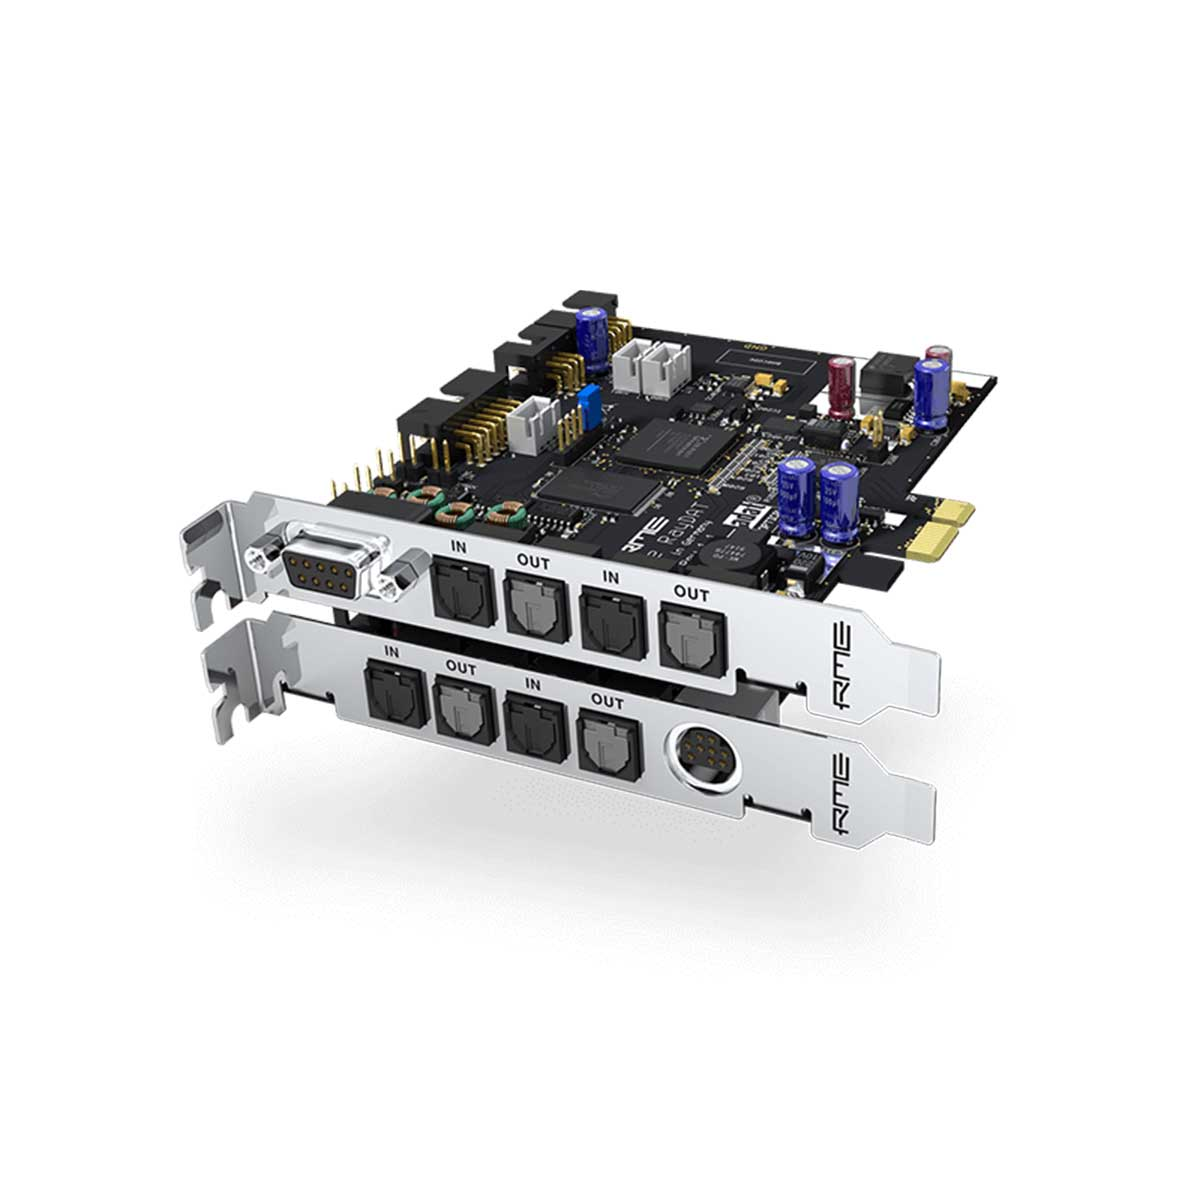 RME HDSPe RayDAT 72-channel PCI Express Audio Interface Card with ADAT, SPDIF and AES/EBU IO